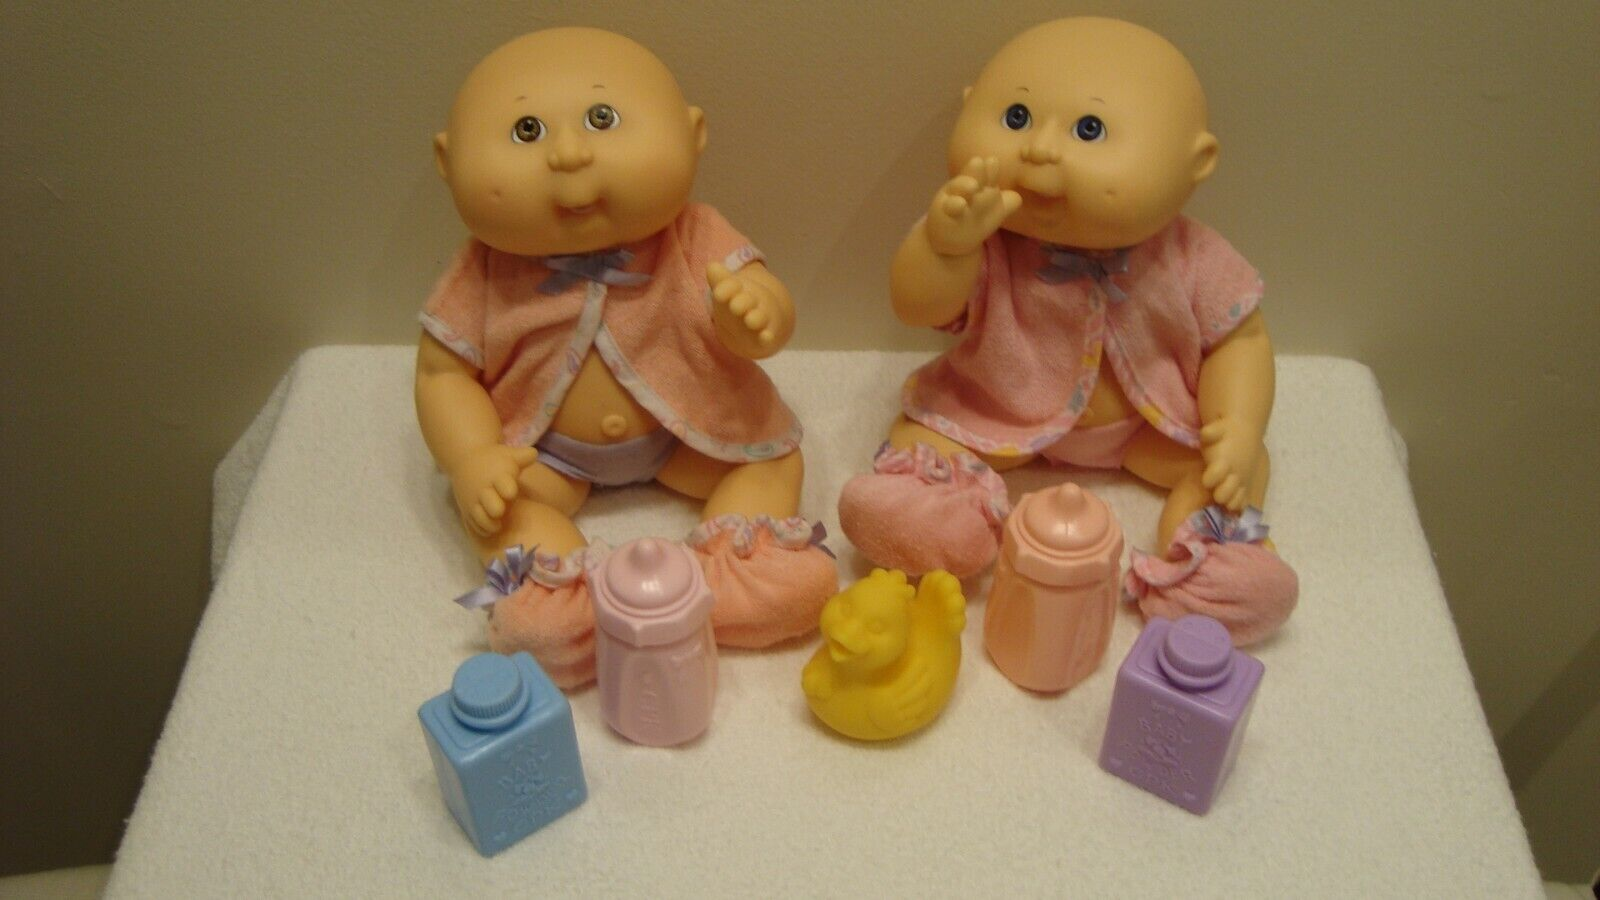 Cabbage Patch Kids Bath Care Baby Dolls 2 1993 Hasbro CPK  - $24.99